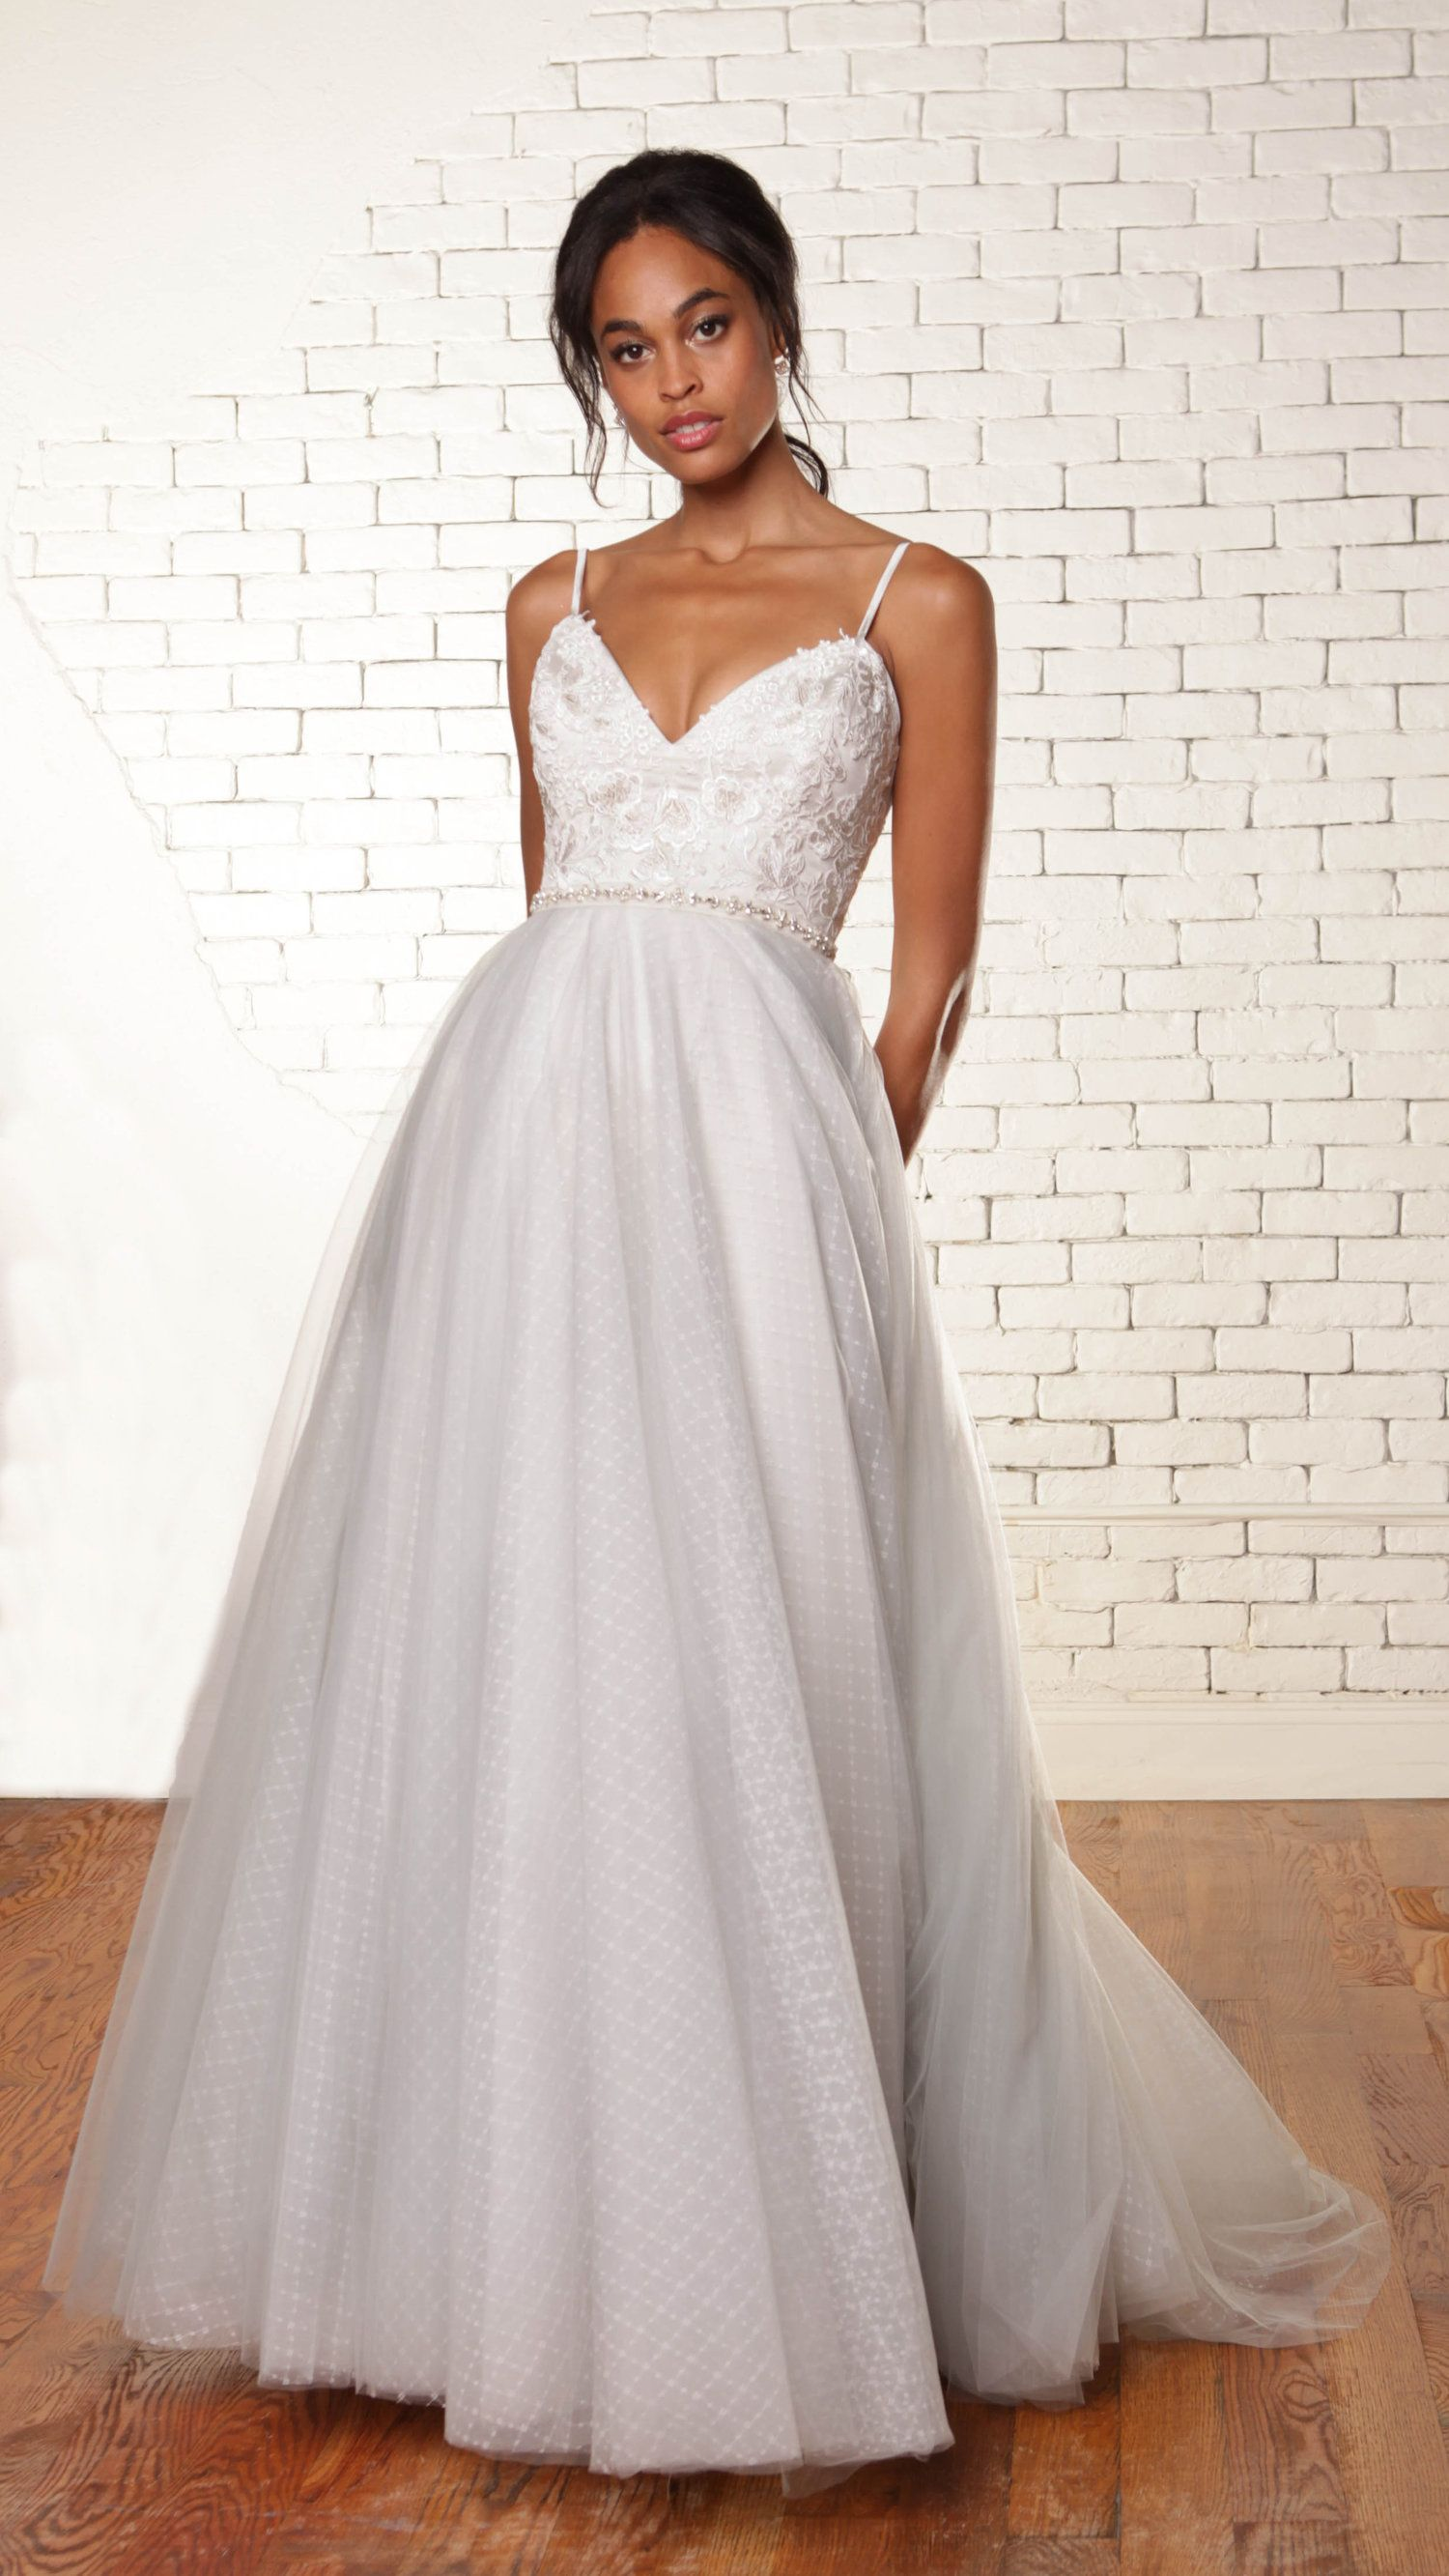 Wedding dresses brooklyn  Pin by Jess May on wedding ideas  Pinterest  Gowns Bridal gowns